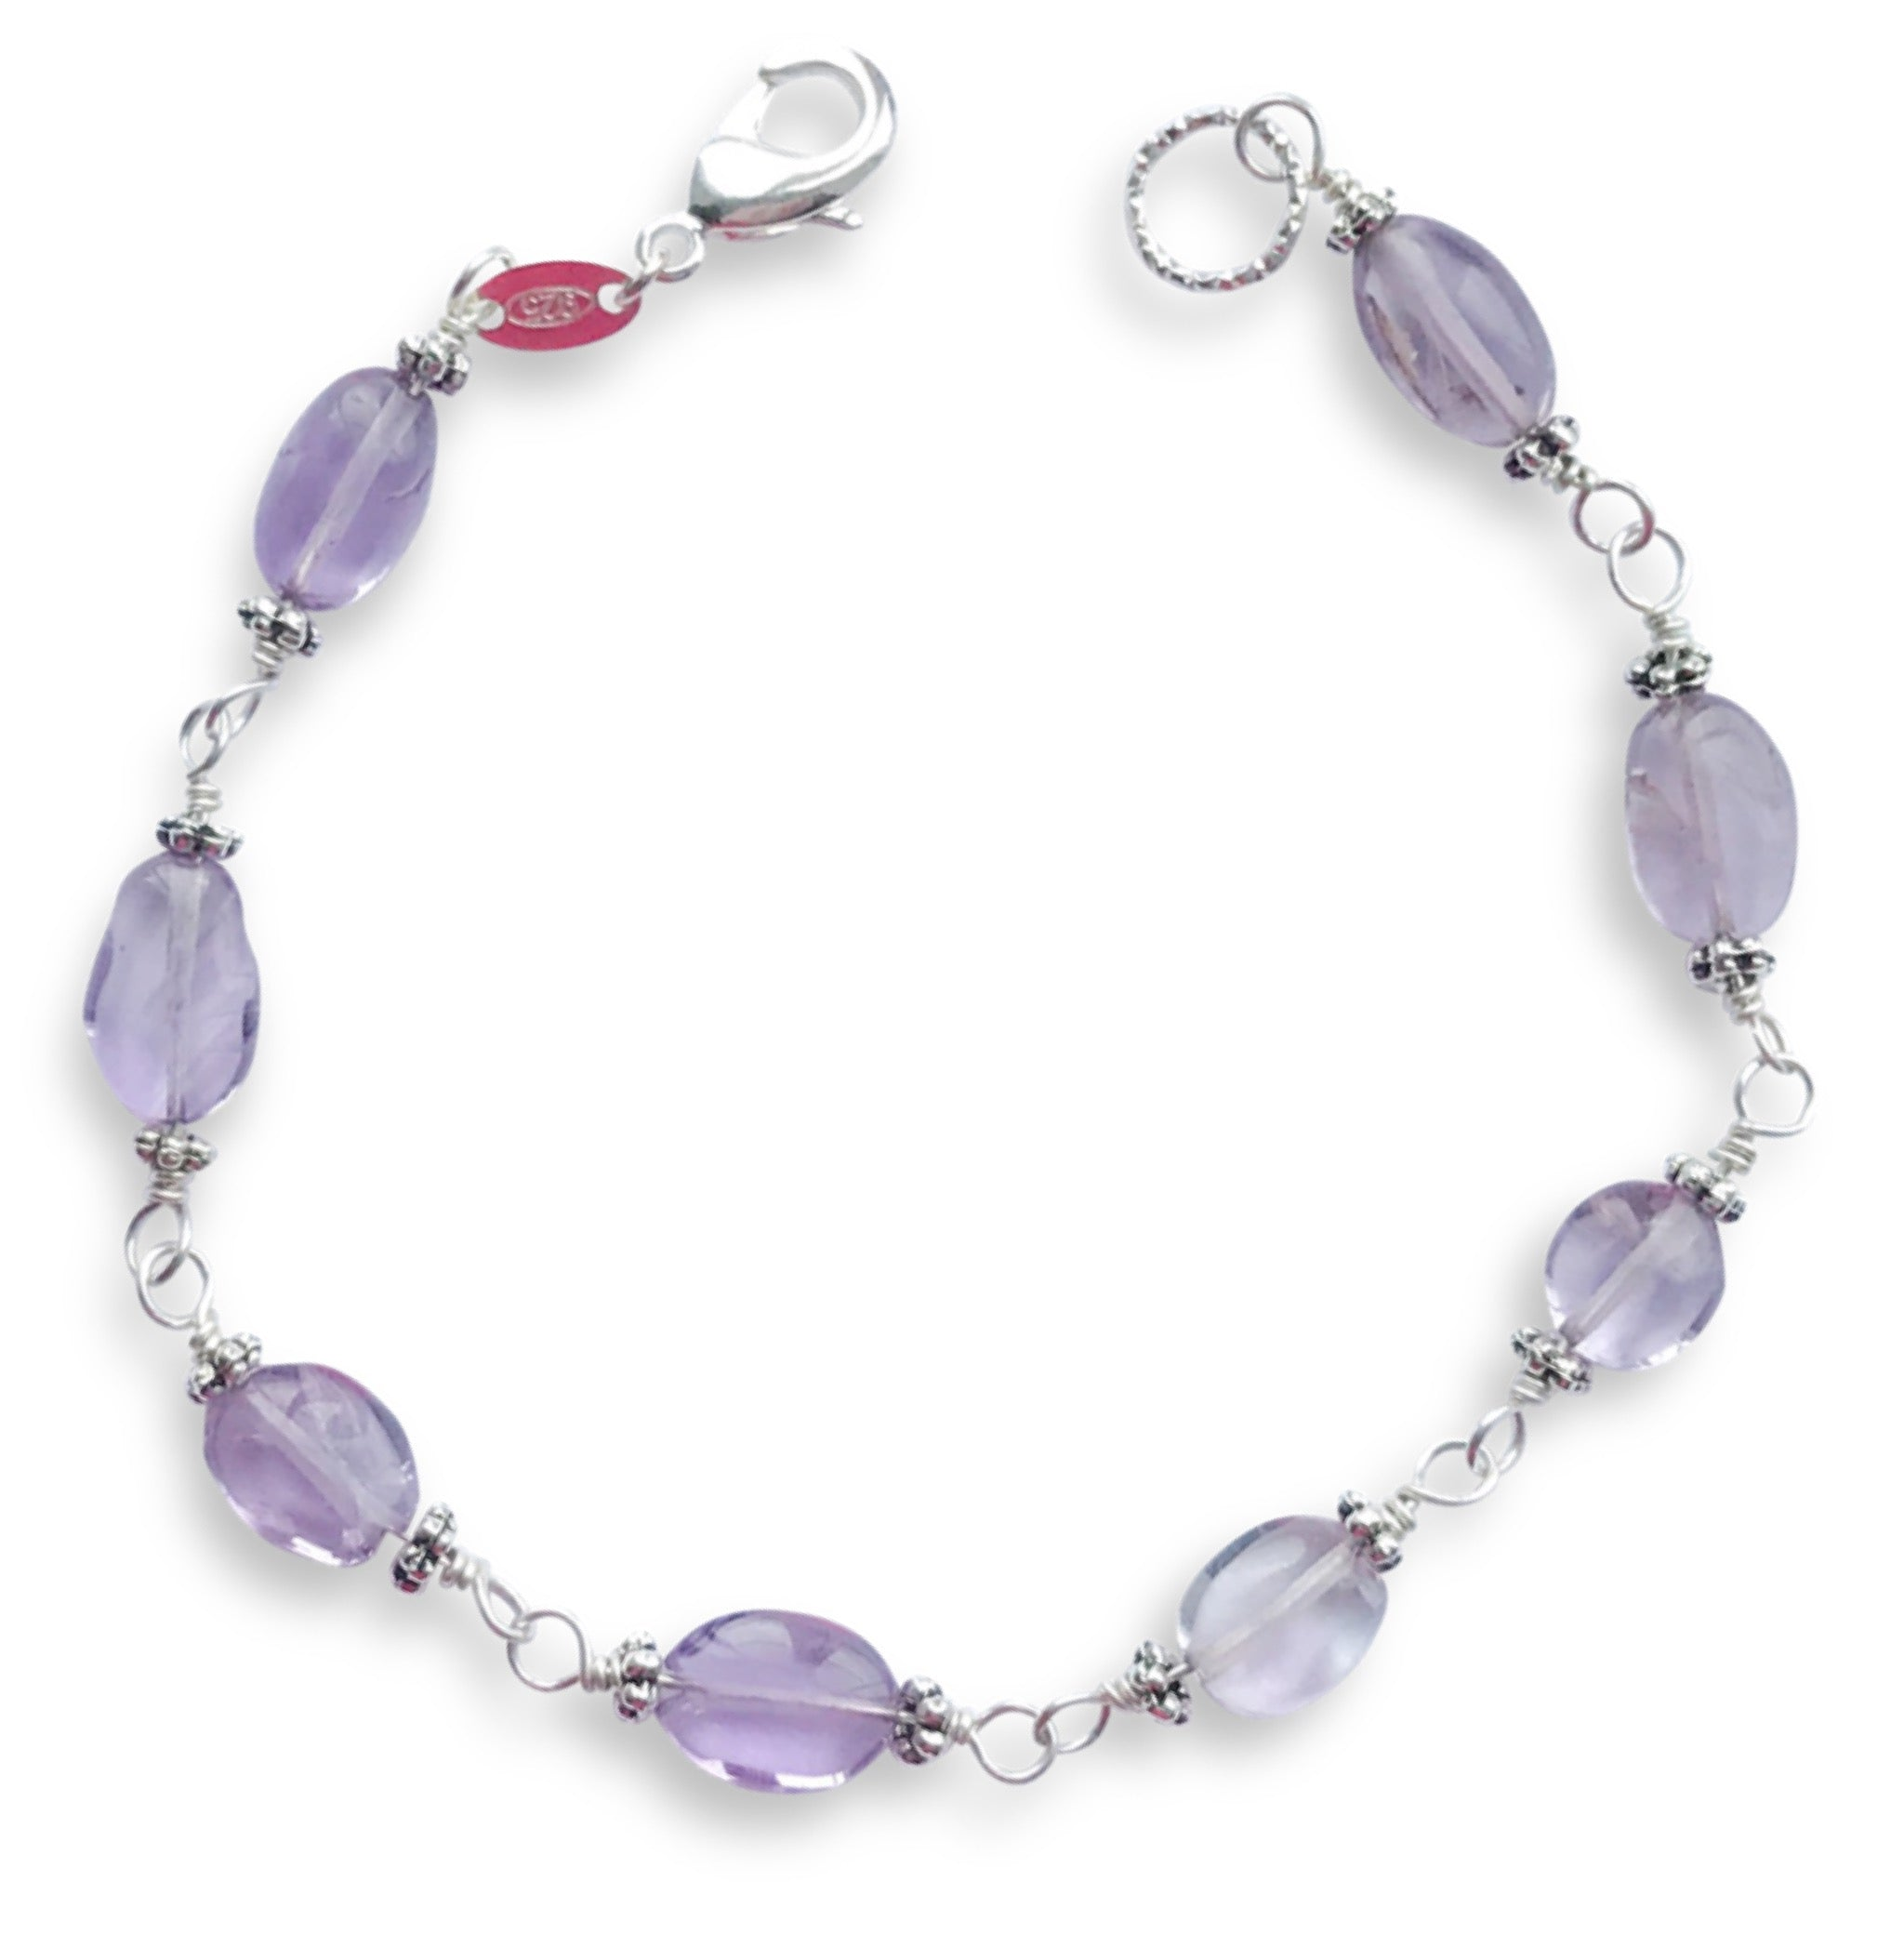 Christmas Gifts for Her - Handmade Amethyst Bracelet - Swanky Collection